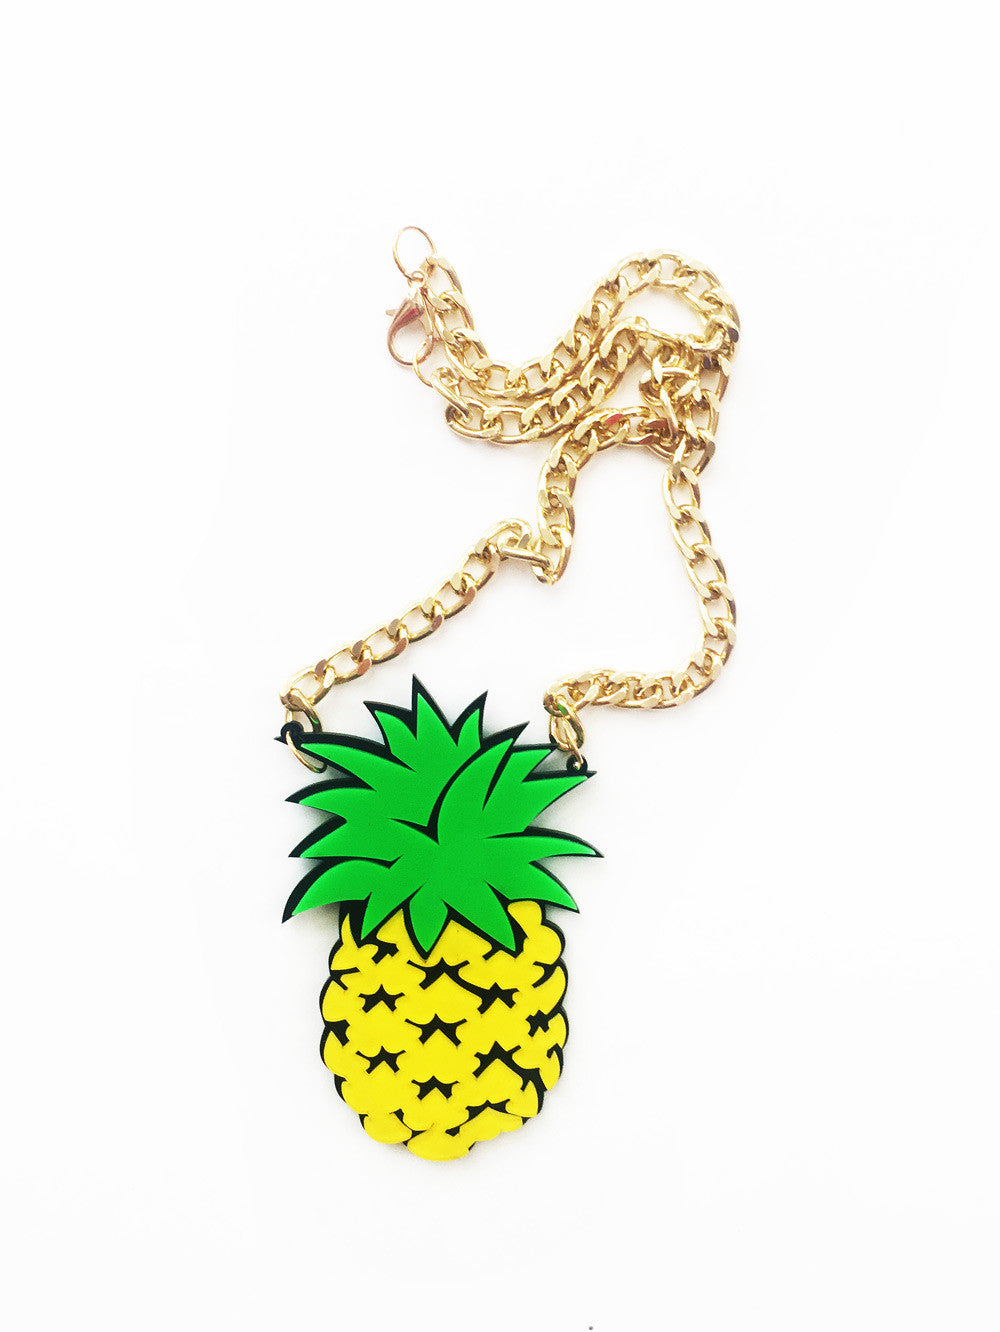 Acrylic Pineapple Gold Chain Necklace